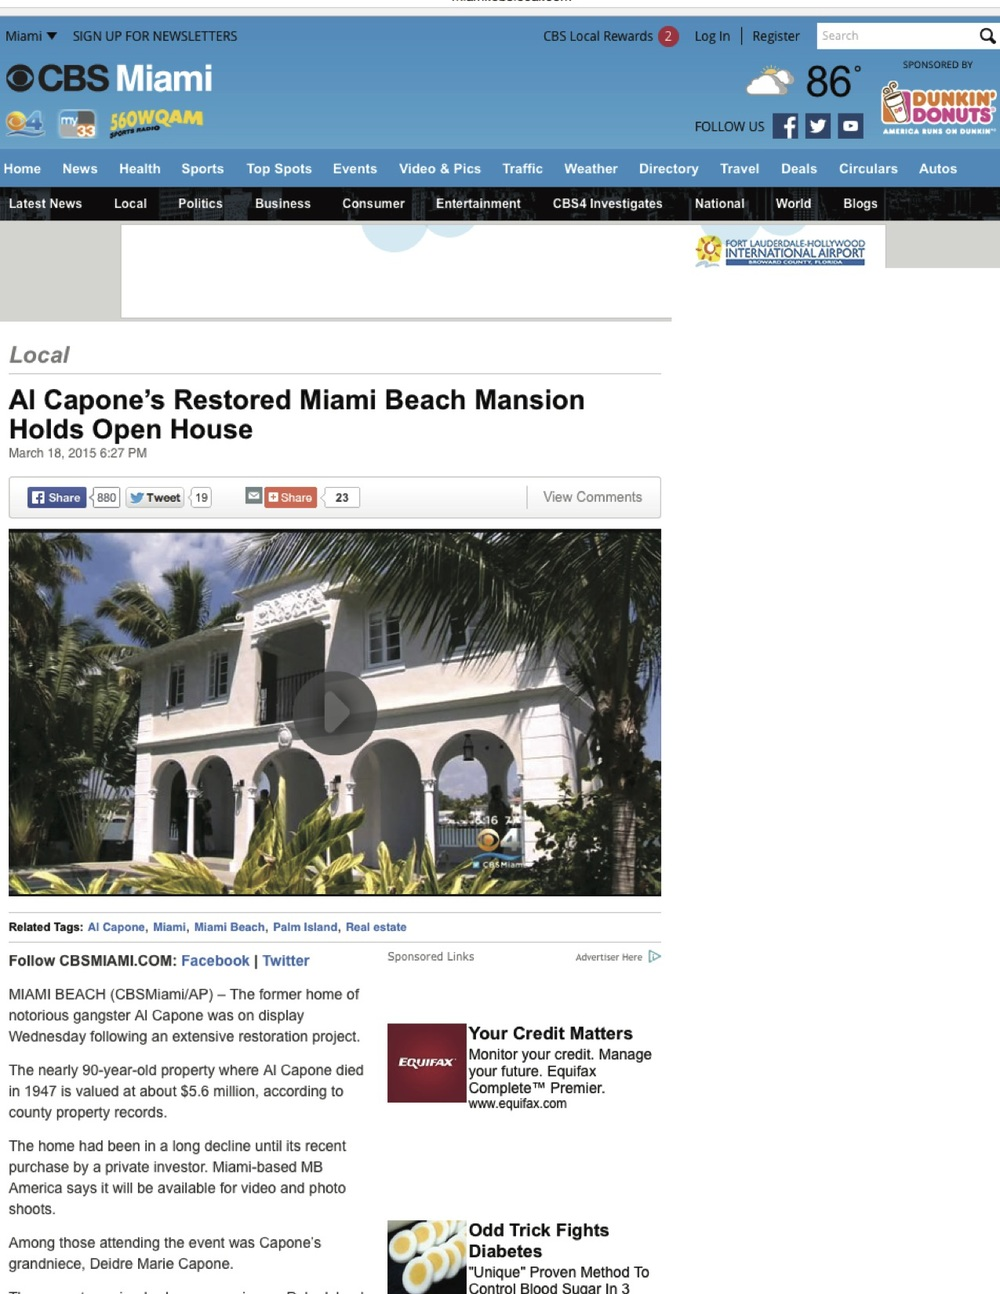 "<p><strong>CBS Miami</strong><a href=""http://miami.cbslocal.com/2015/03/18/al-capones-restored-miami-beach-mansion-holding-open-house/"" target=""_blank"">Watch Video→</a></p>"